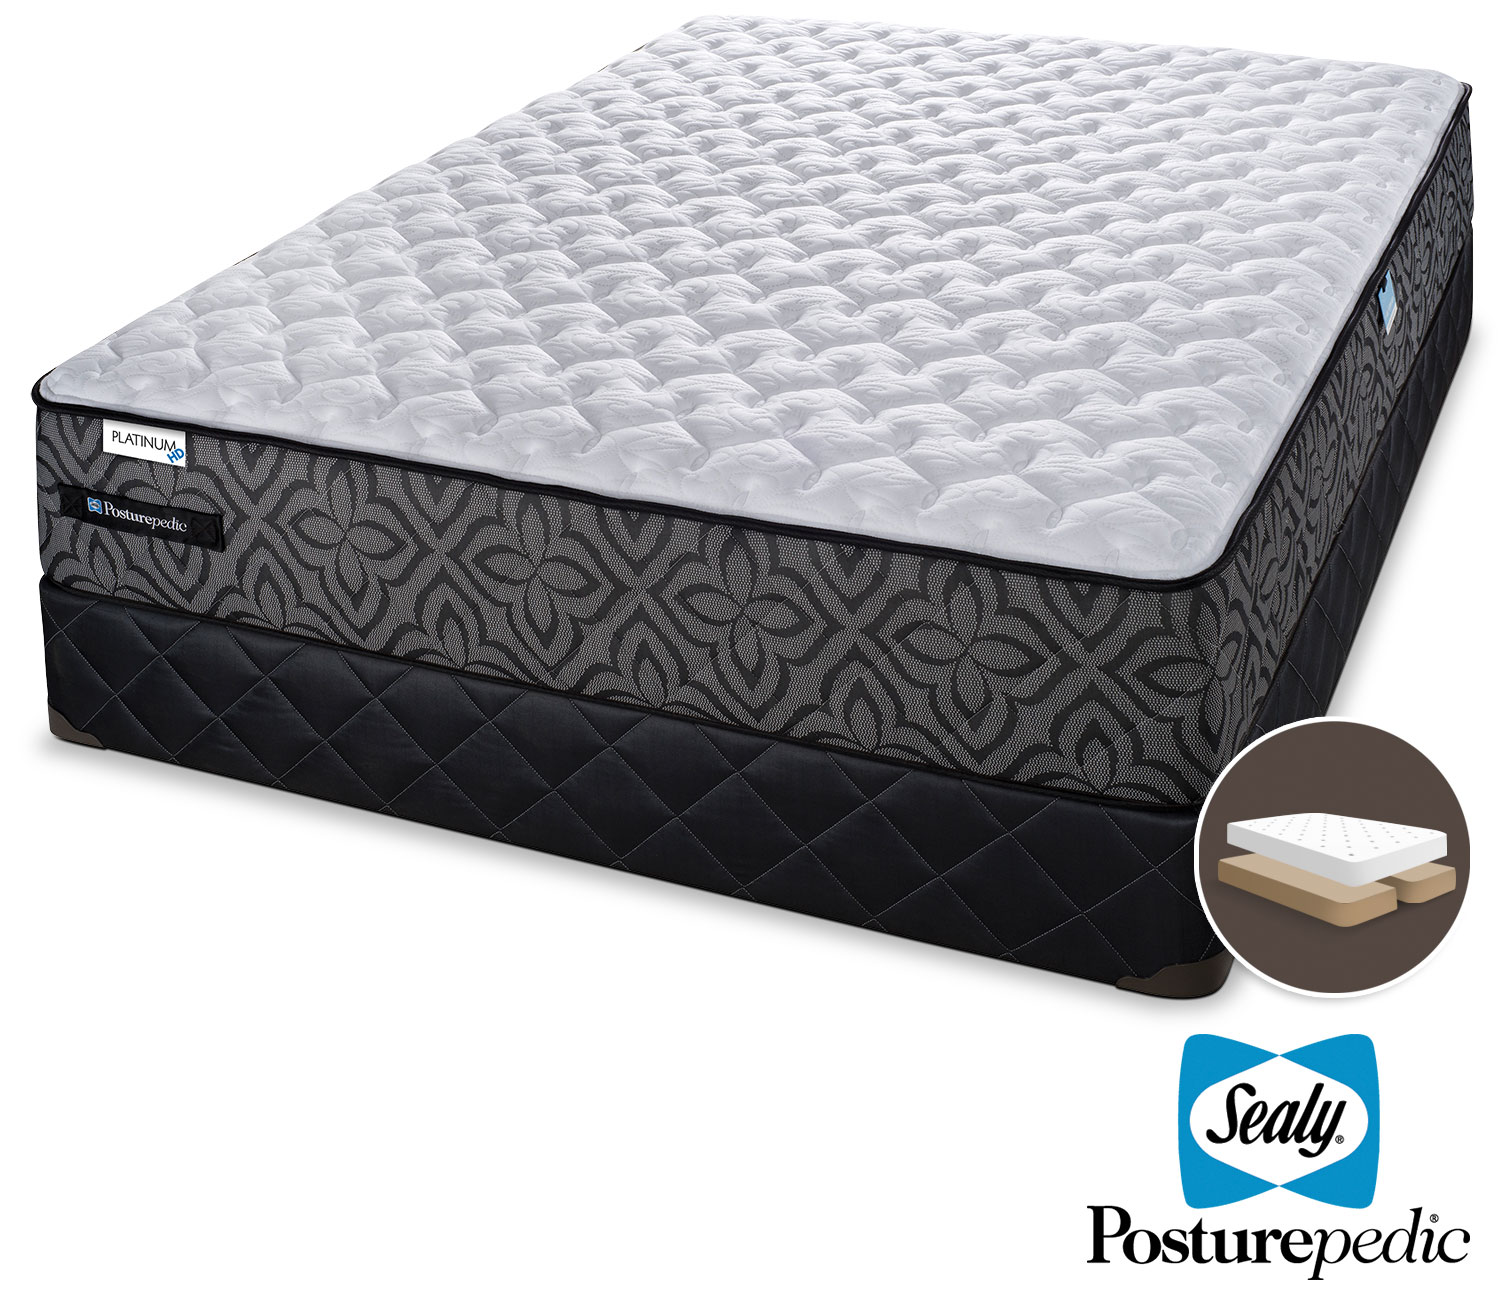 Sealy Posturepedic 1 K Extra Firm King Mattress and Split Boxspring Set